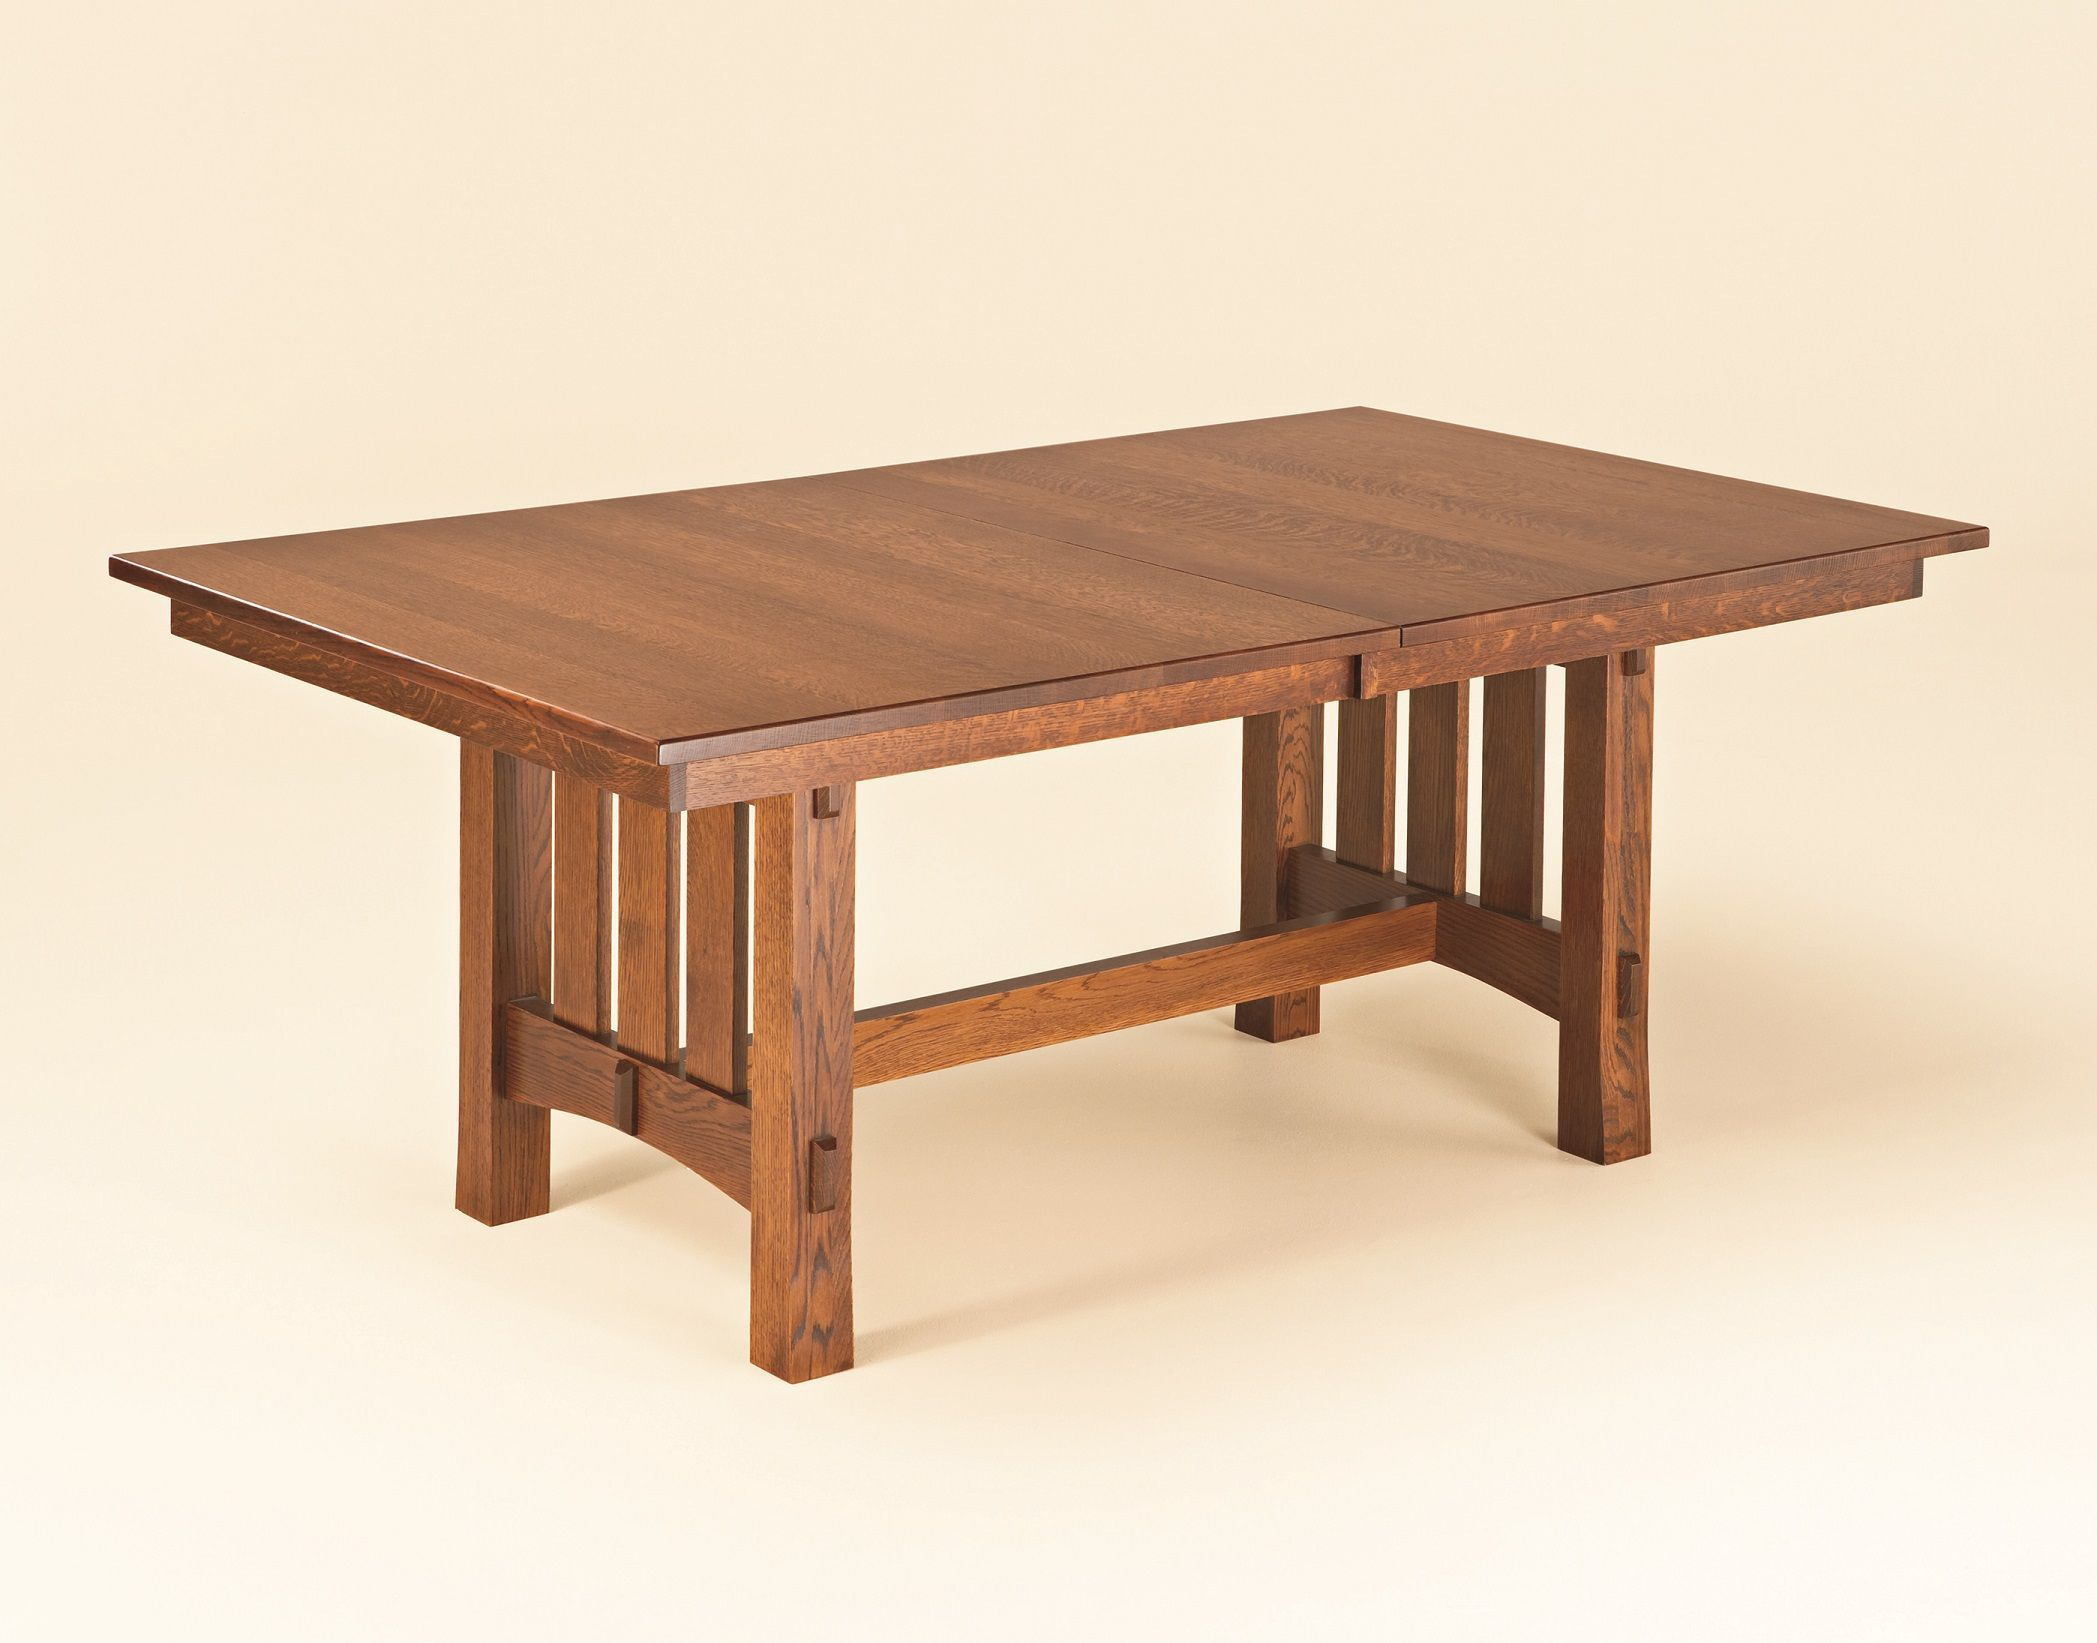 This Is A Classic Mission Dining Table With Through Tenon